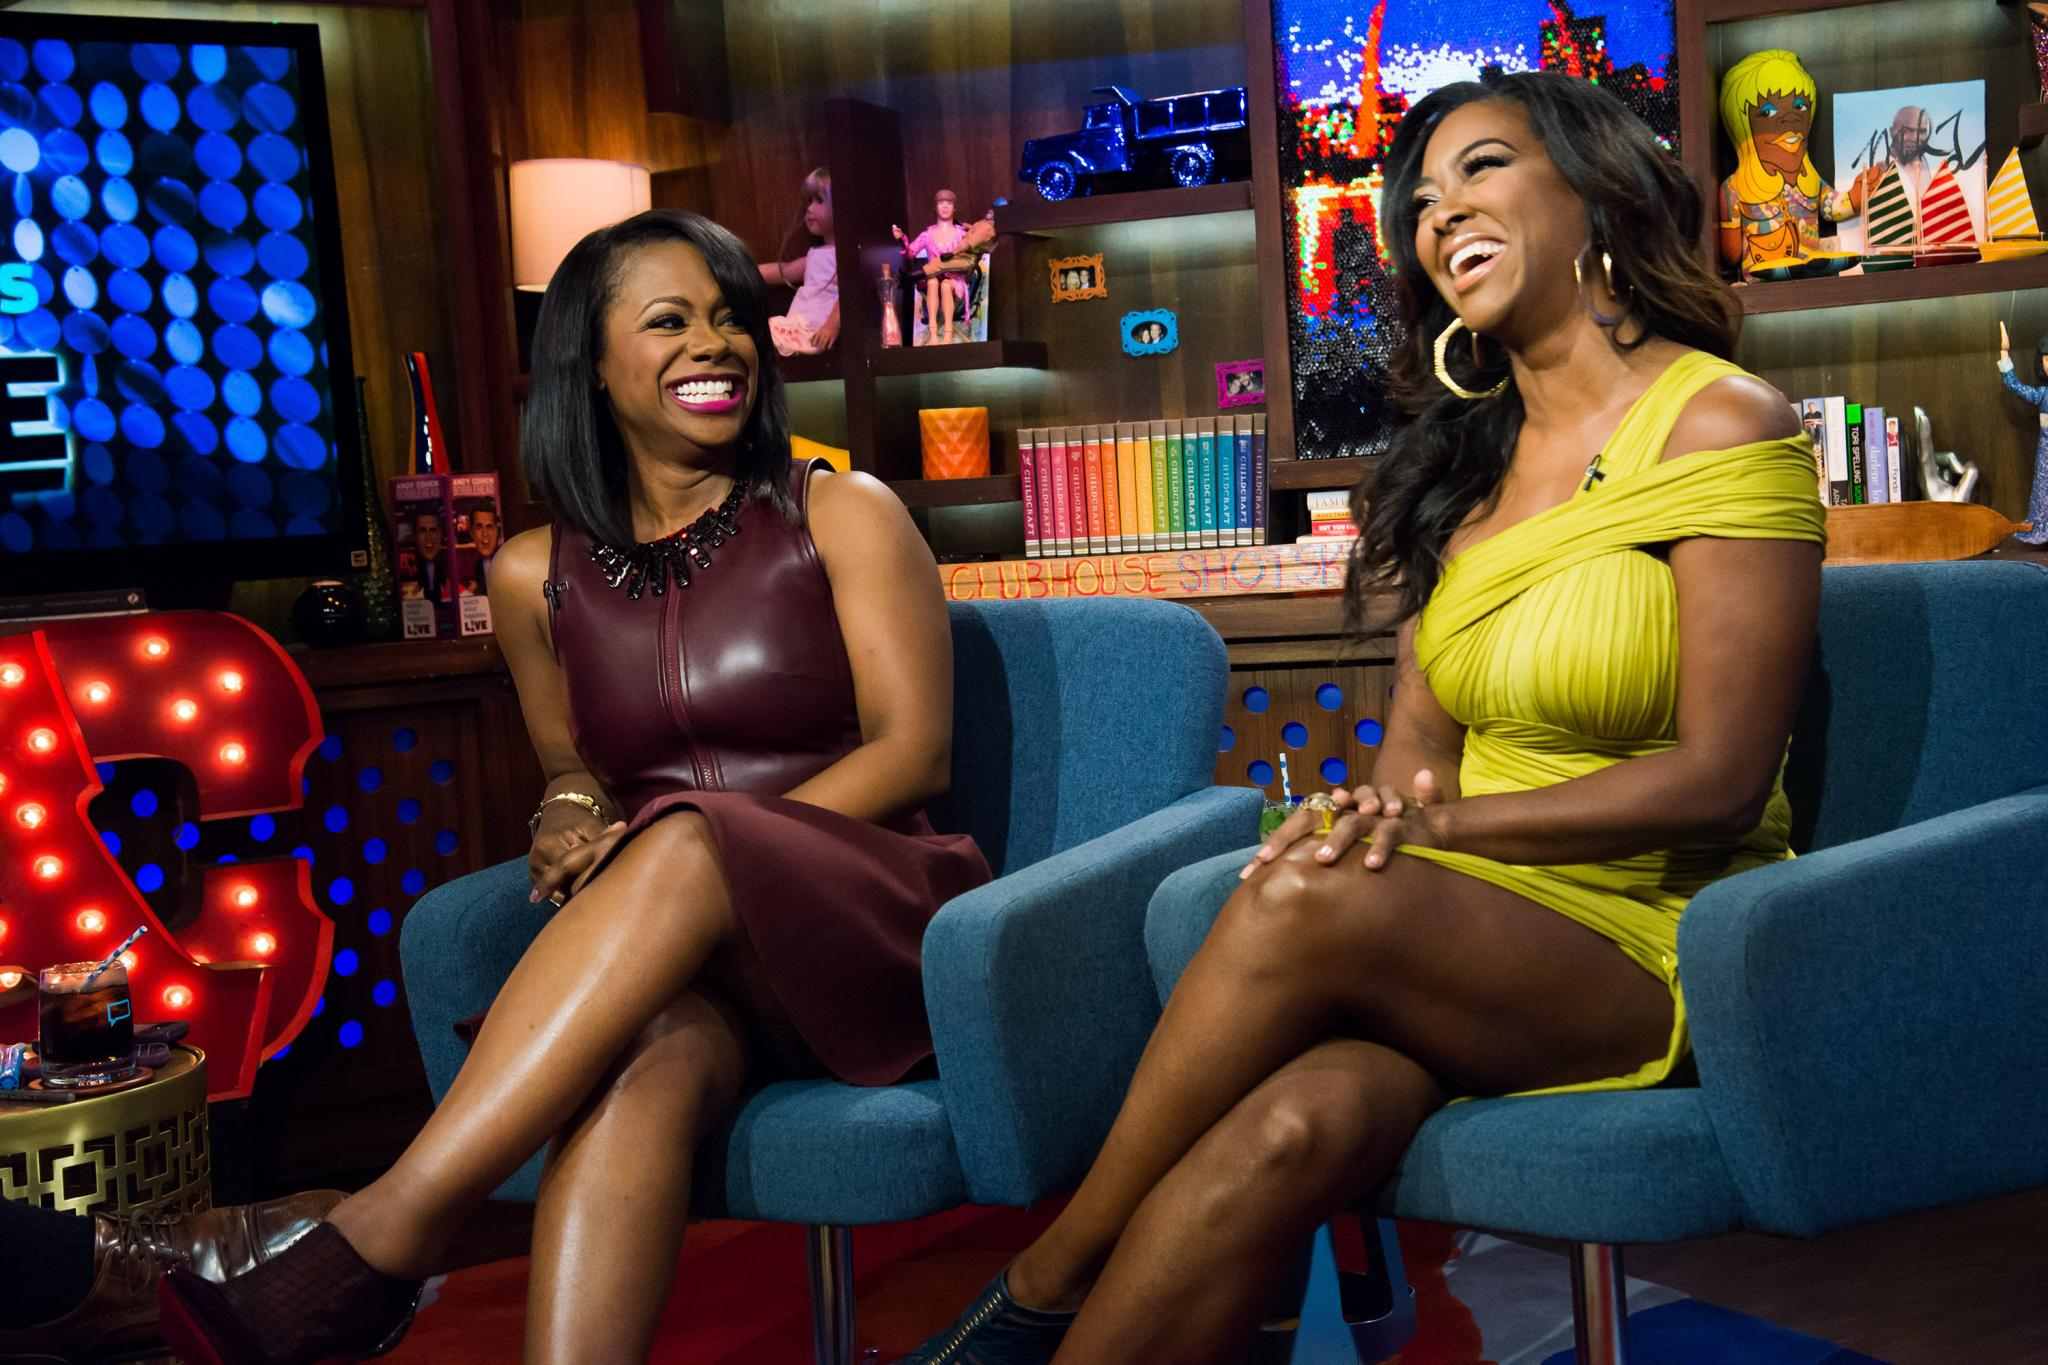 Kandi Burruss Shows Fans The Earrings That Kenya Moore Gifted Her